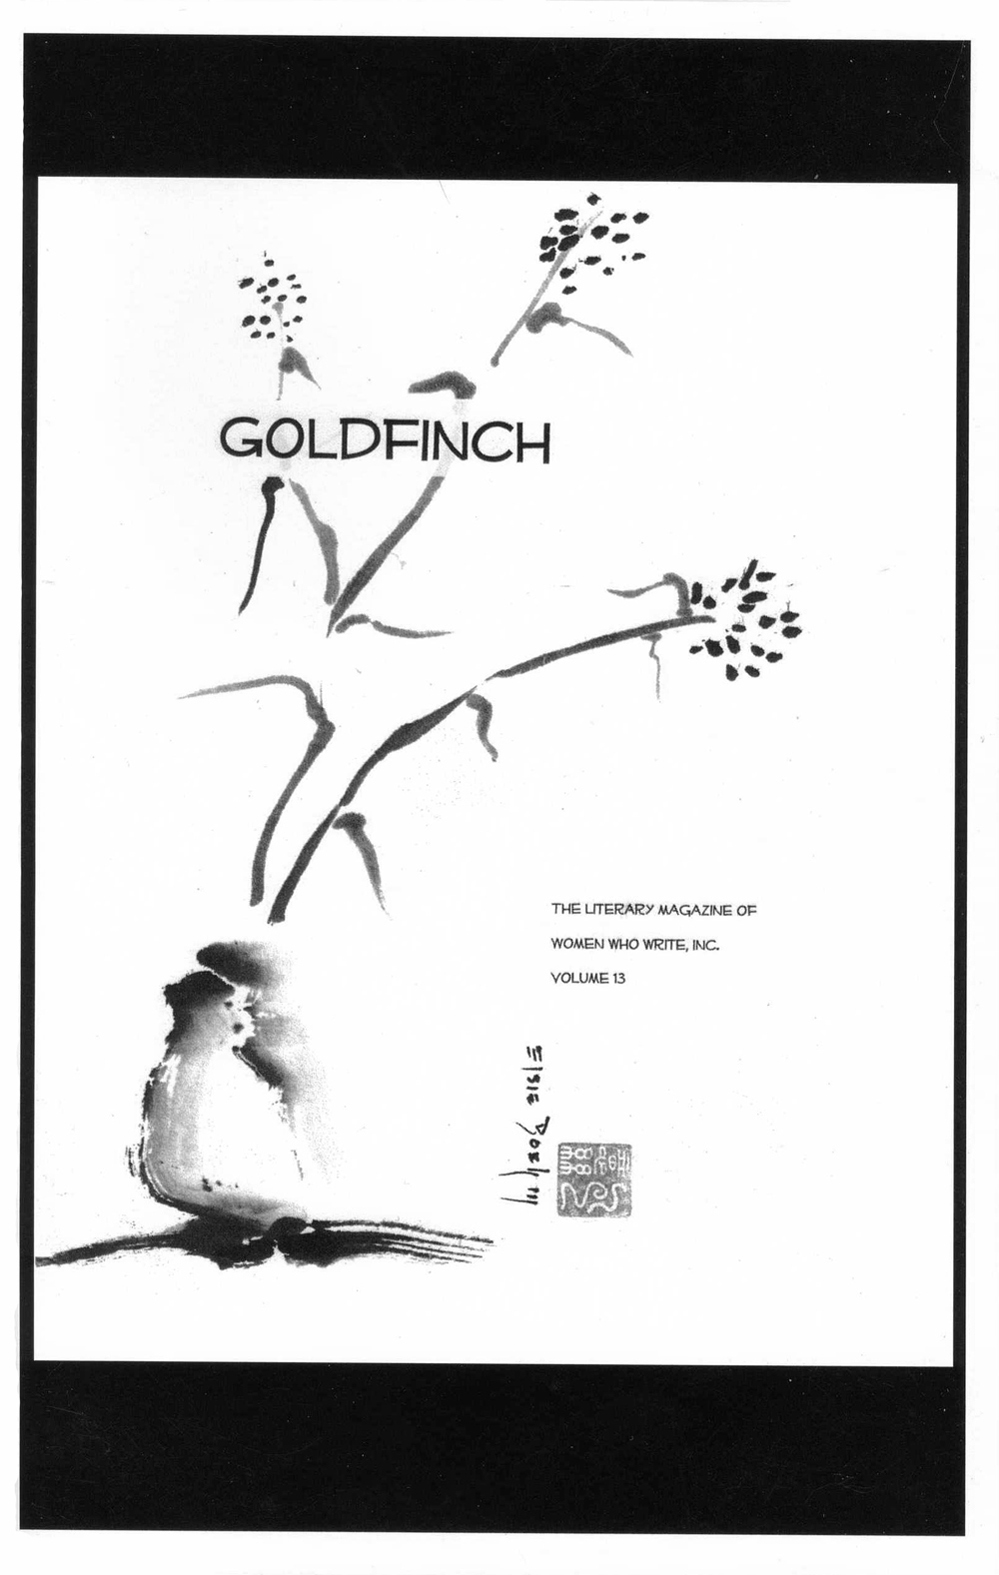 Goldfinch, Vol. 13, 2010